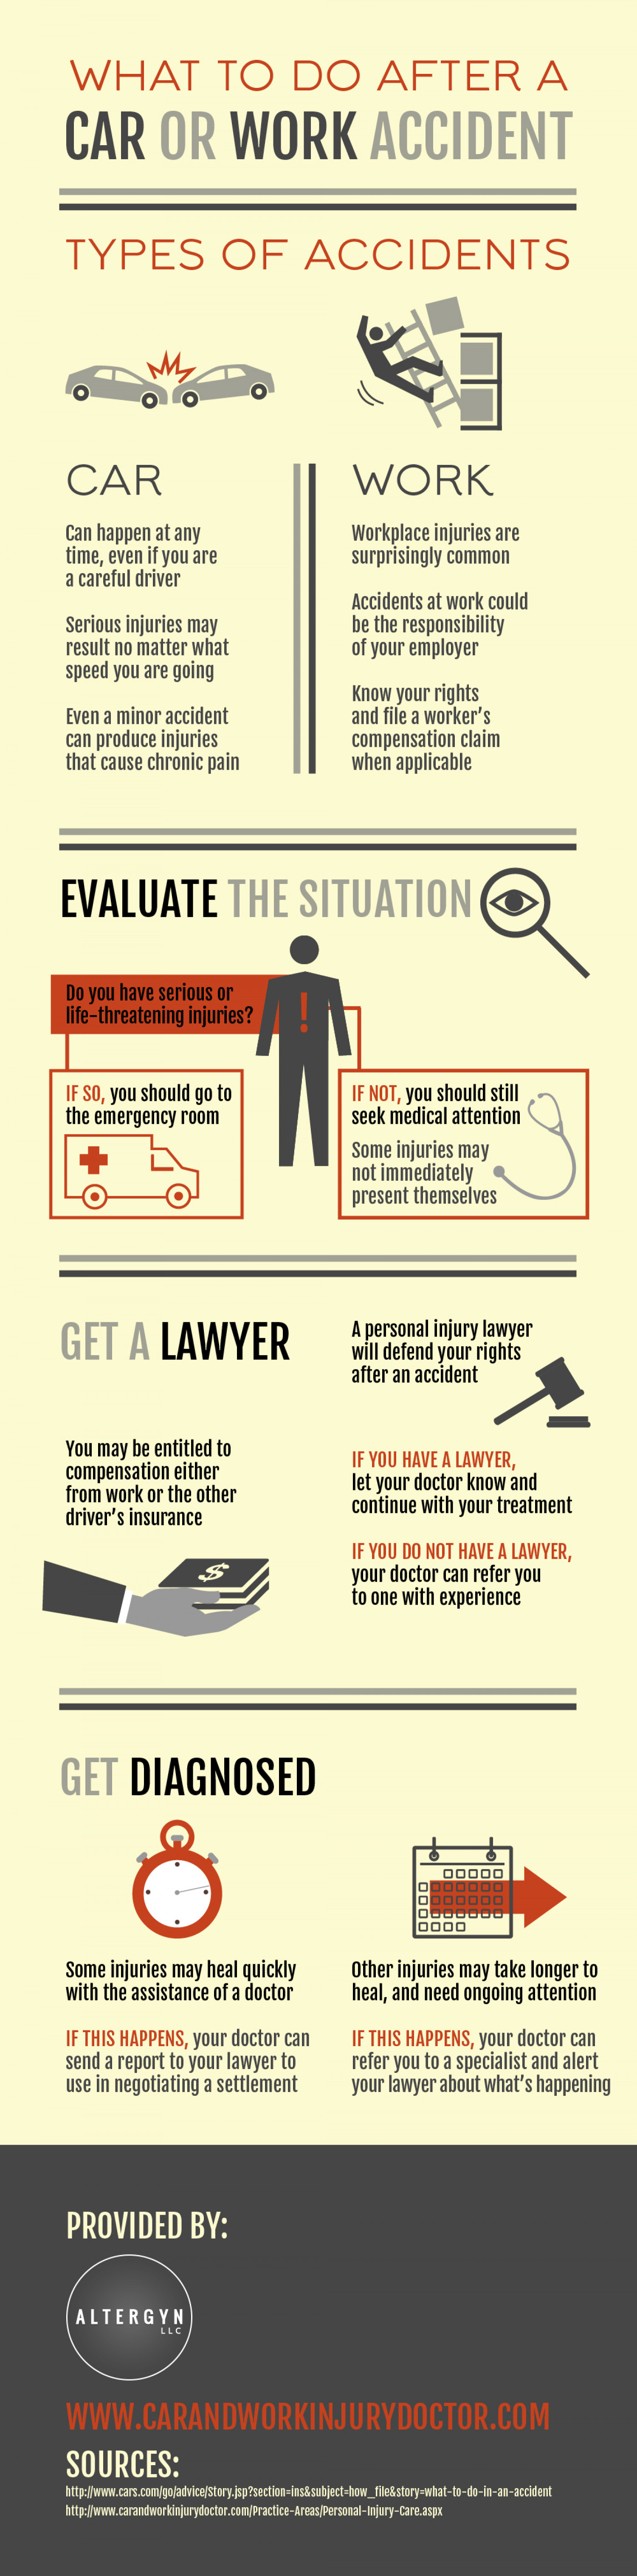 What to Do After a Car or Work Accident Infographic